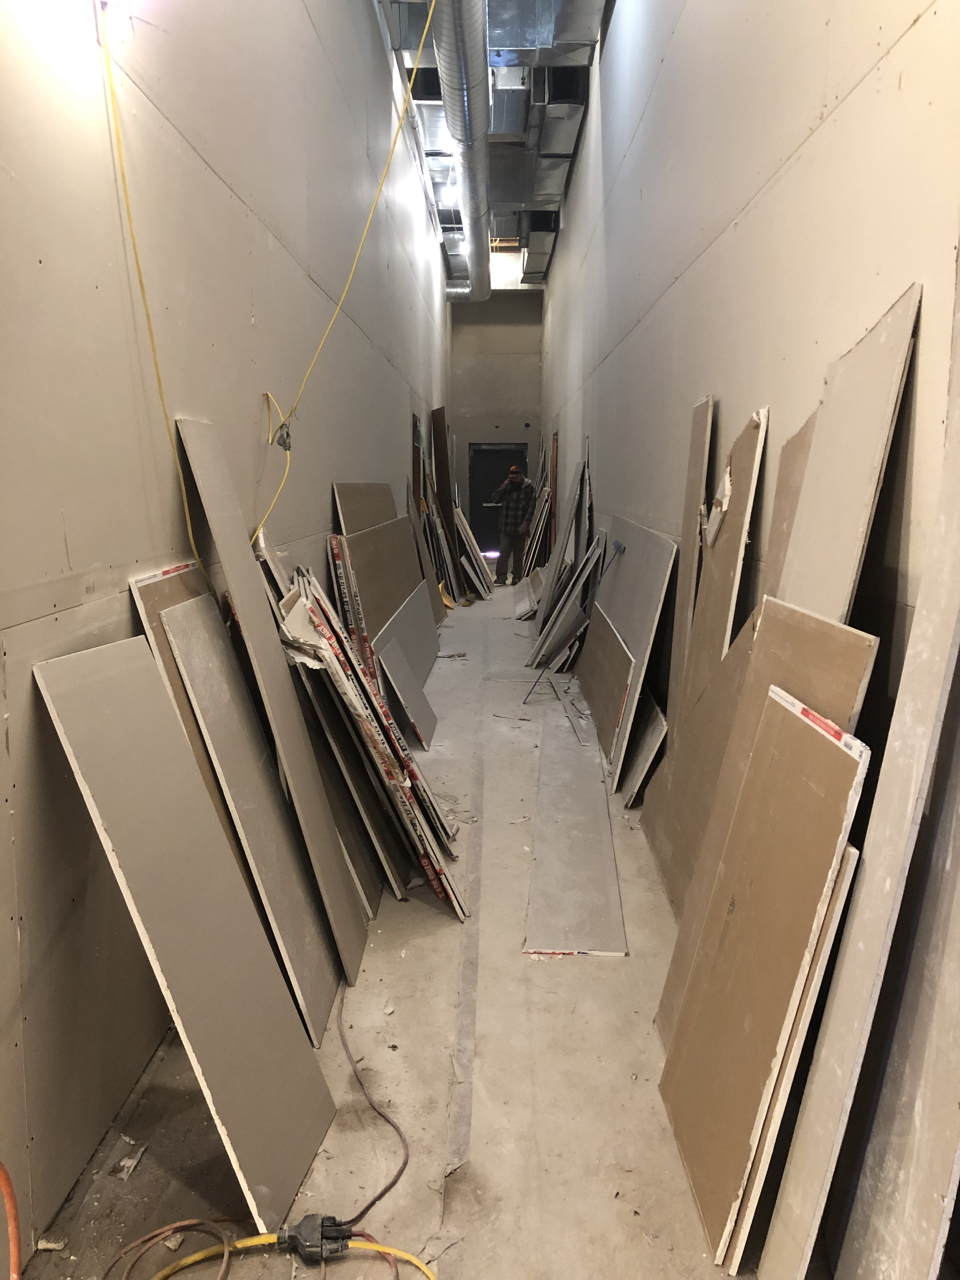 One of the drywall crew workers spends his entire day cleaning up behind the guys hanging the sheets. Still, every day the hallway goes from empty to this.